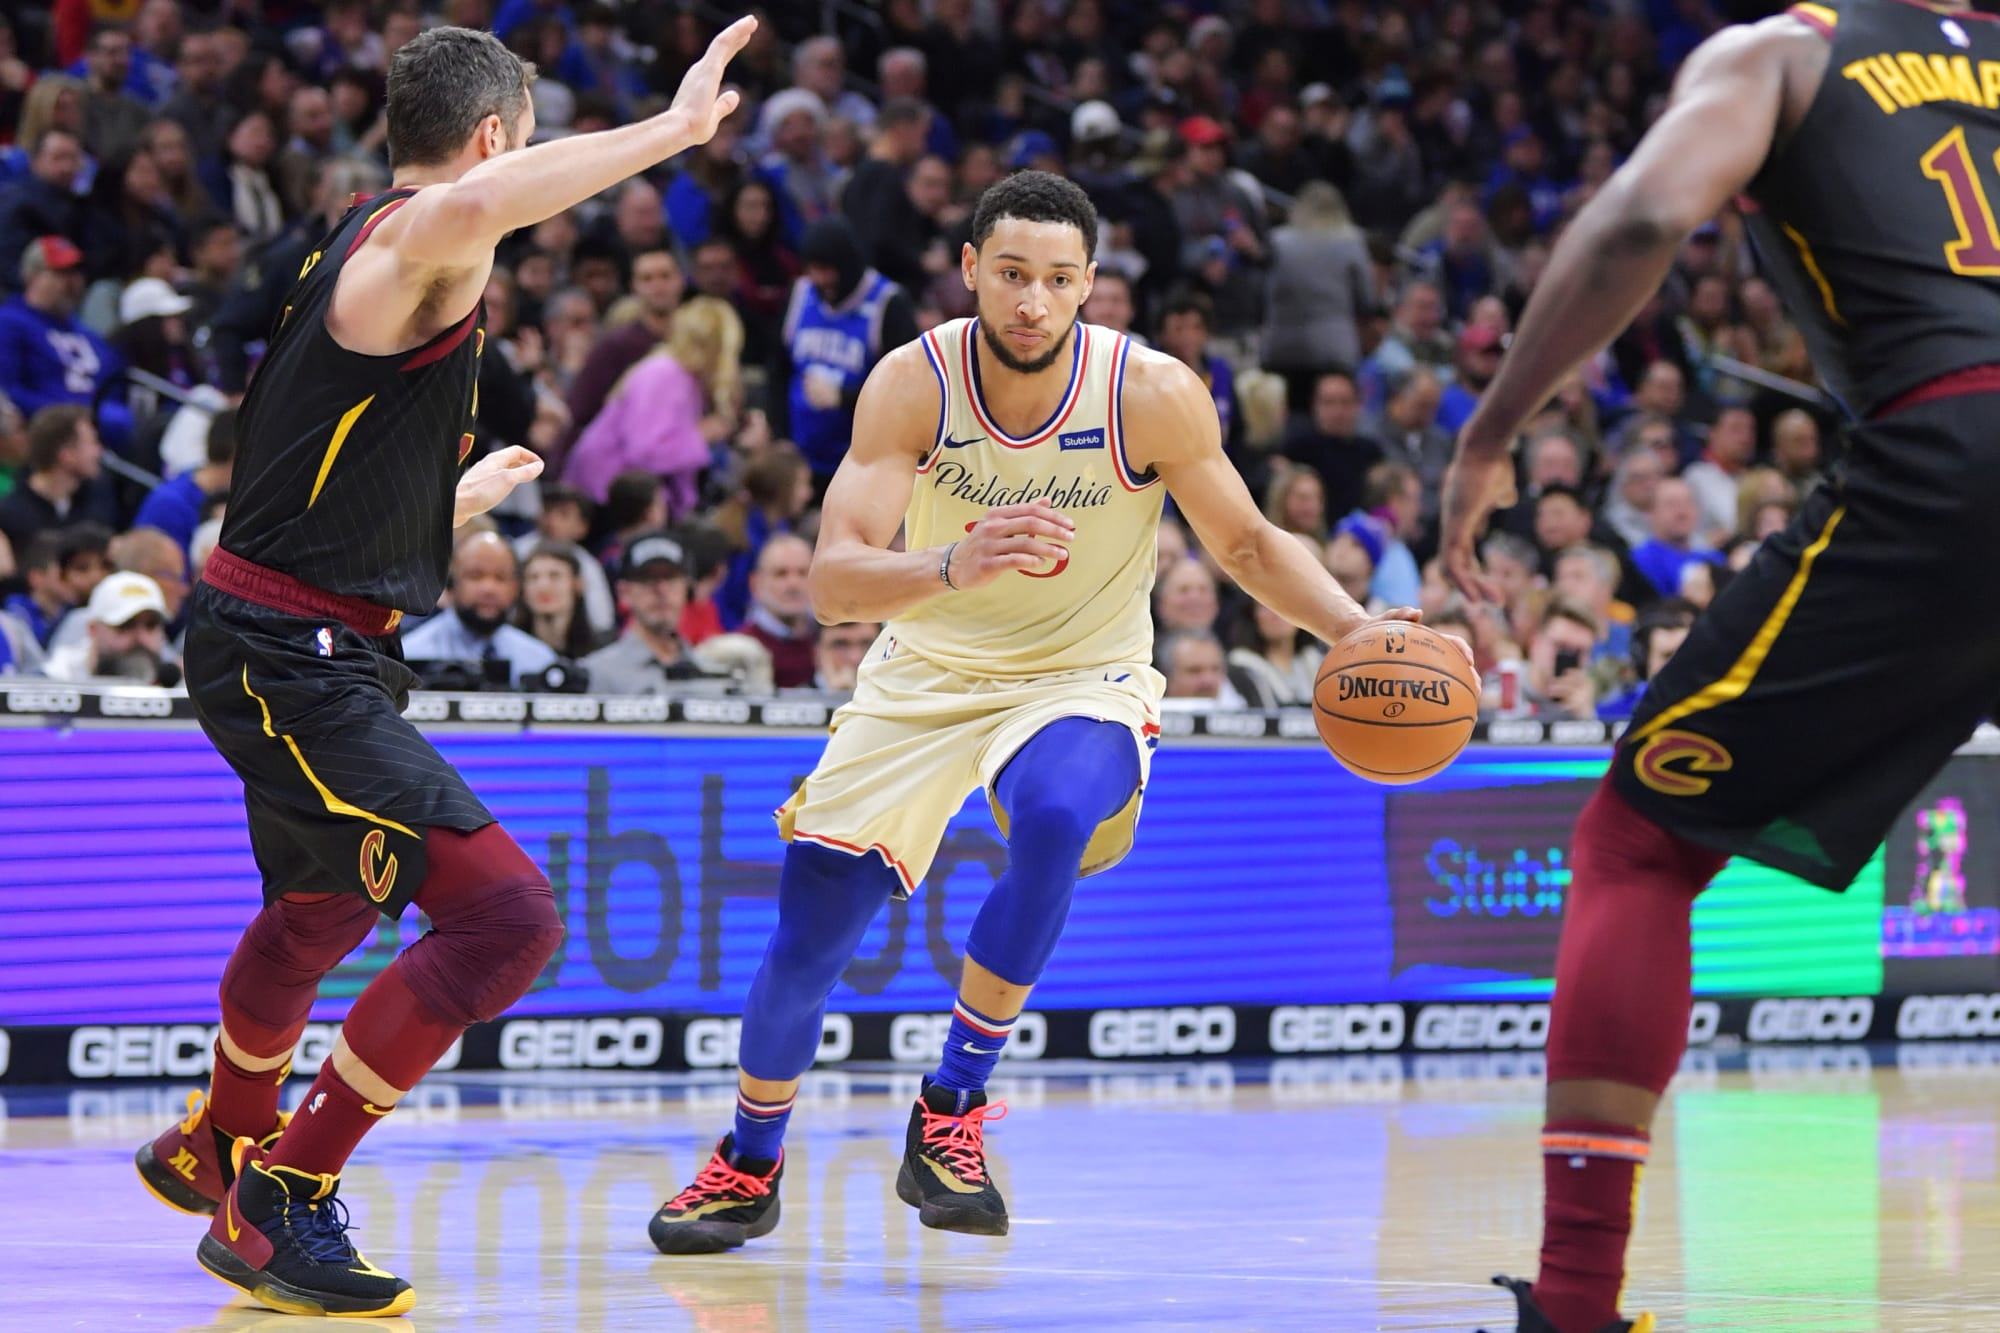 Philadelphia 76ers: No, the Cavaliers won't trade for Ben Simmons